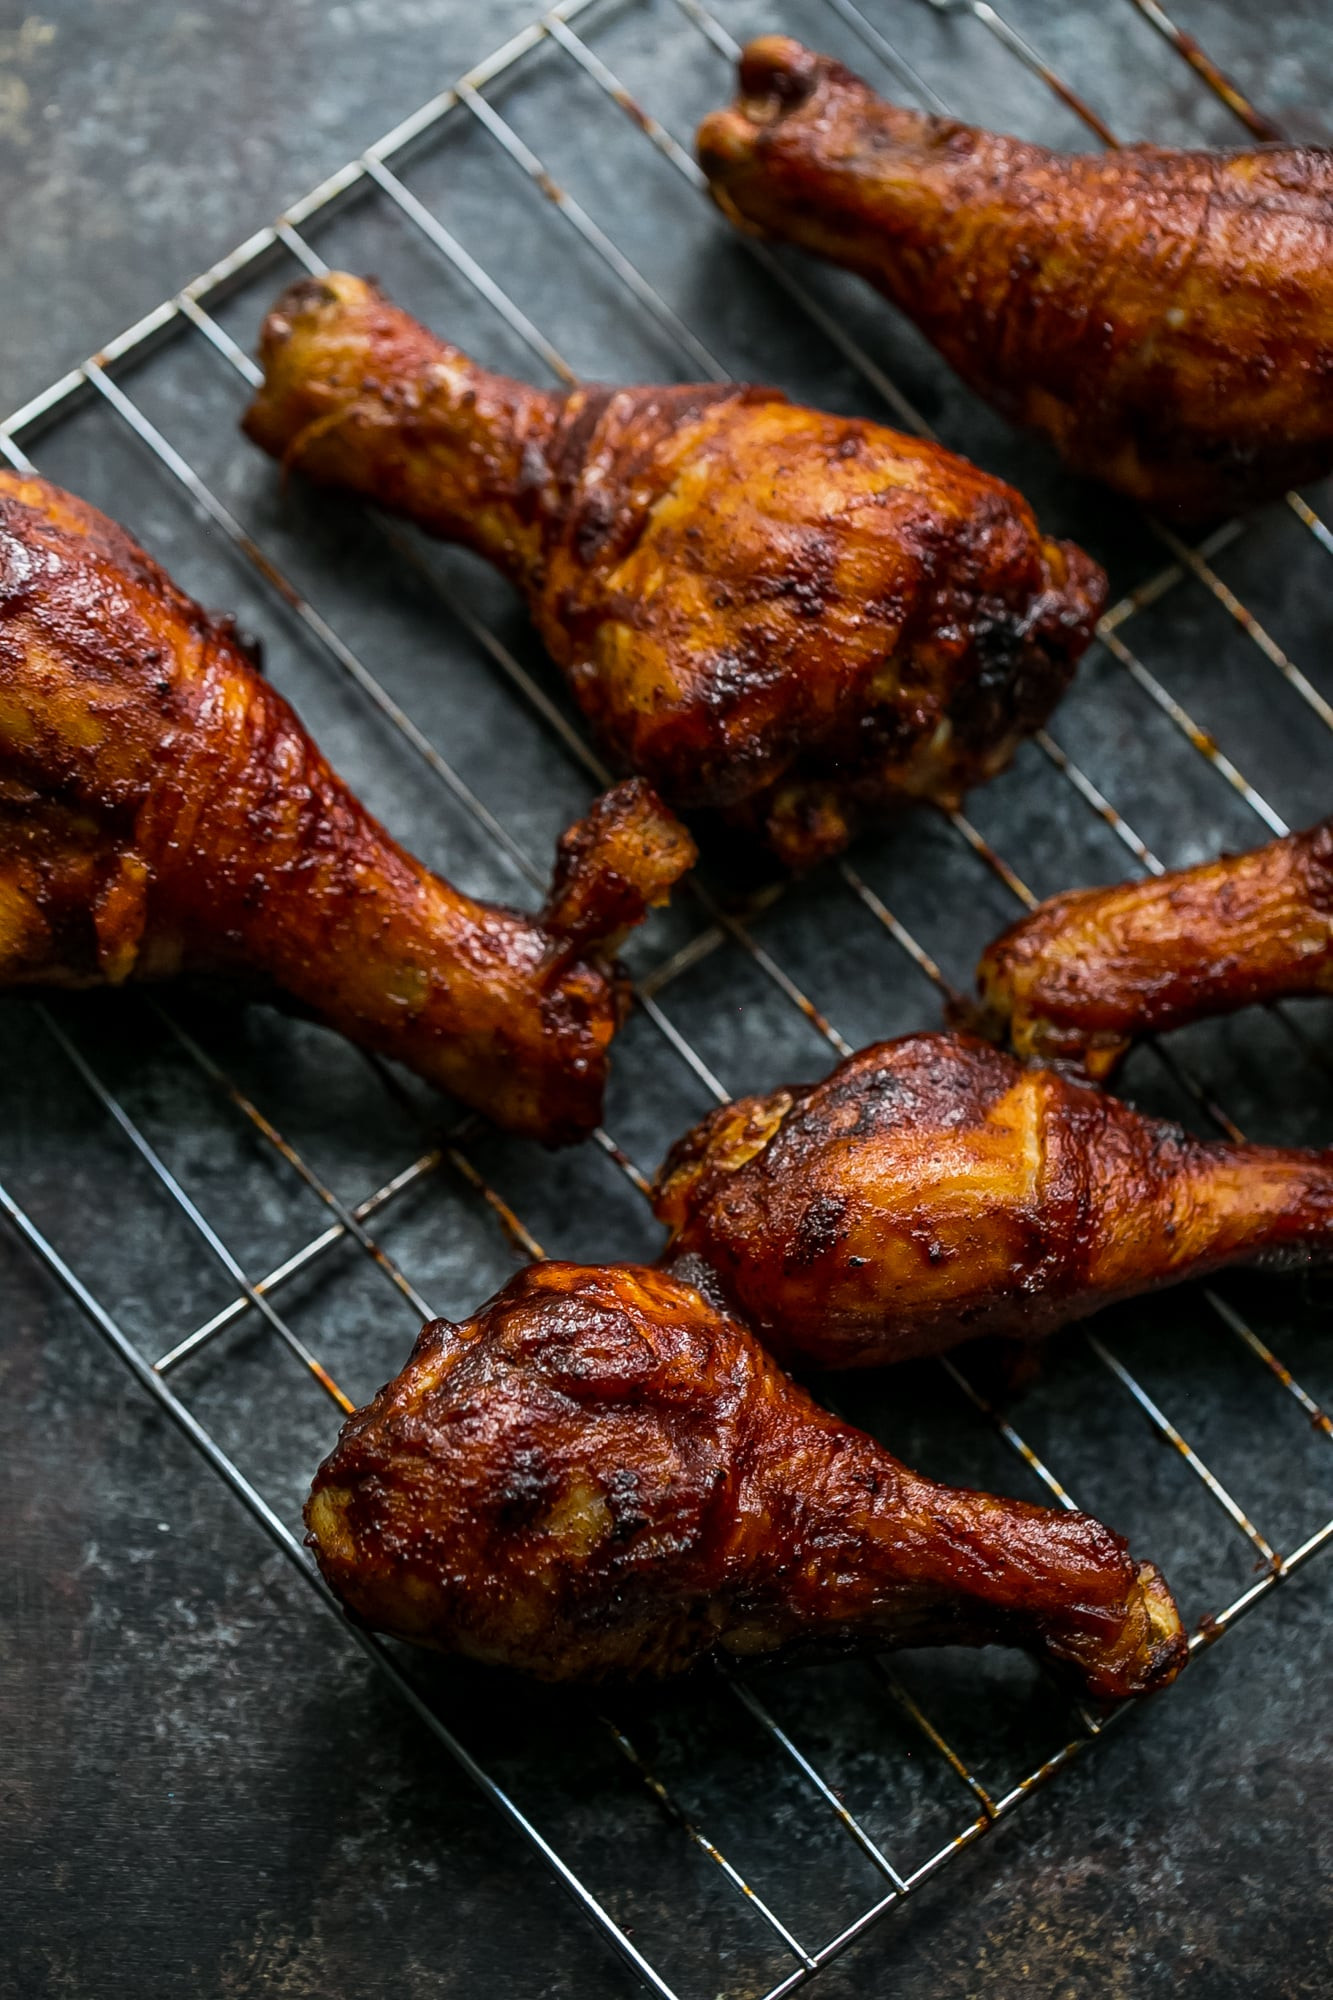 Baked Bbq Chicken Drumsticks  Crunchy Baked BBQ Chicken Drumsticks – Sweet C s Designs